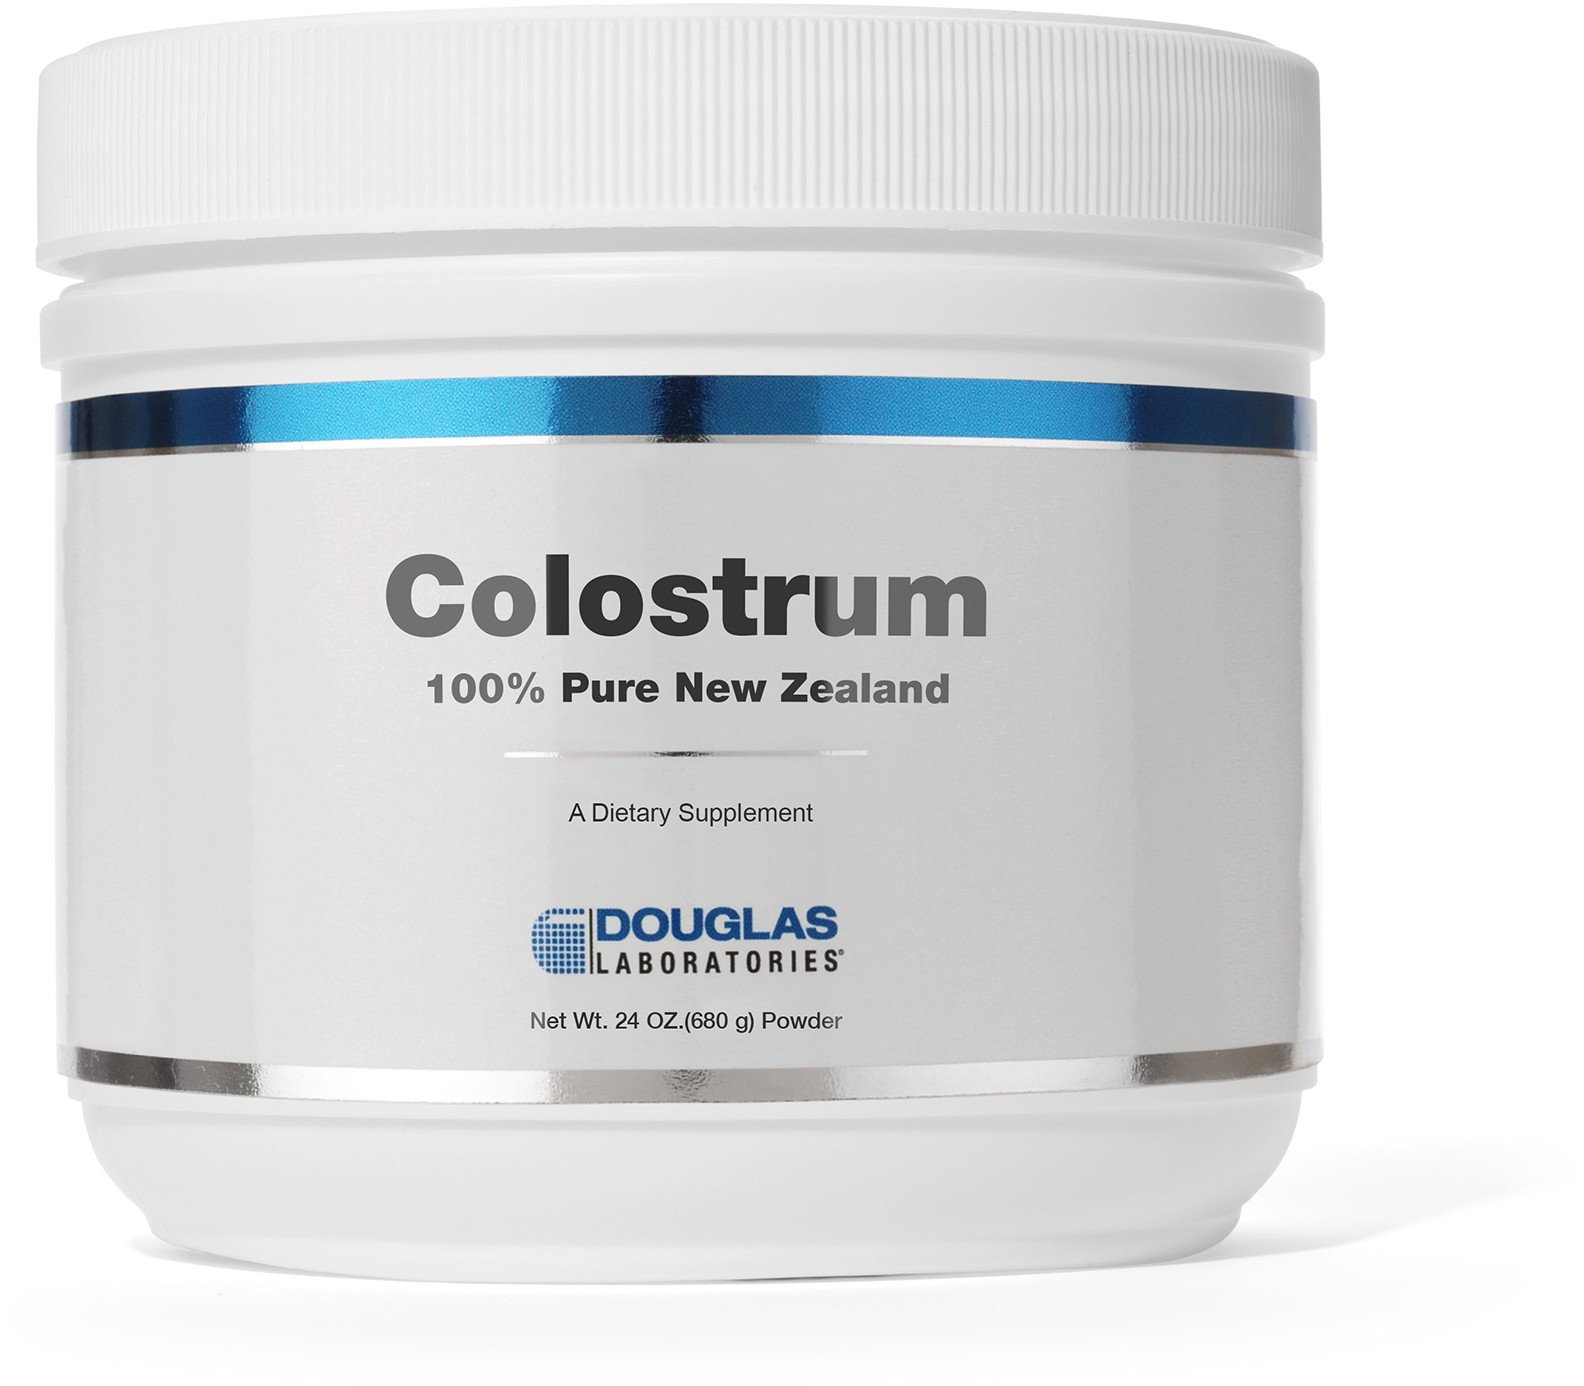 Douglas Laboratories® - Colostrum 100% Pure New Zealand - Supports Immunity and Gastrointestinal Health - 24 oz. Powder